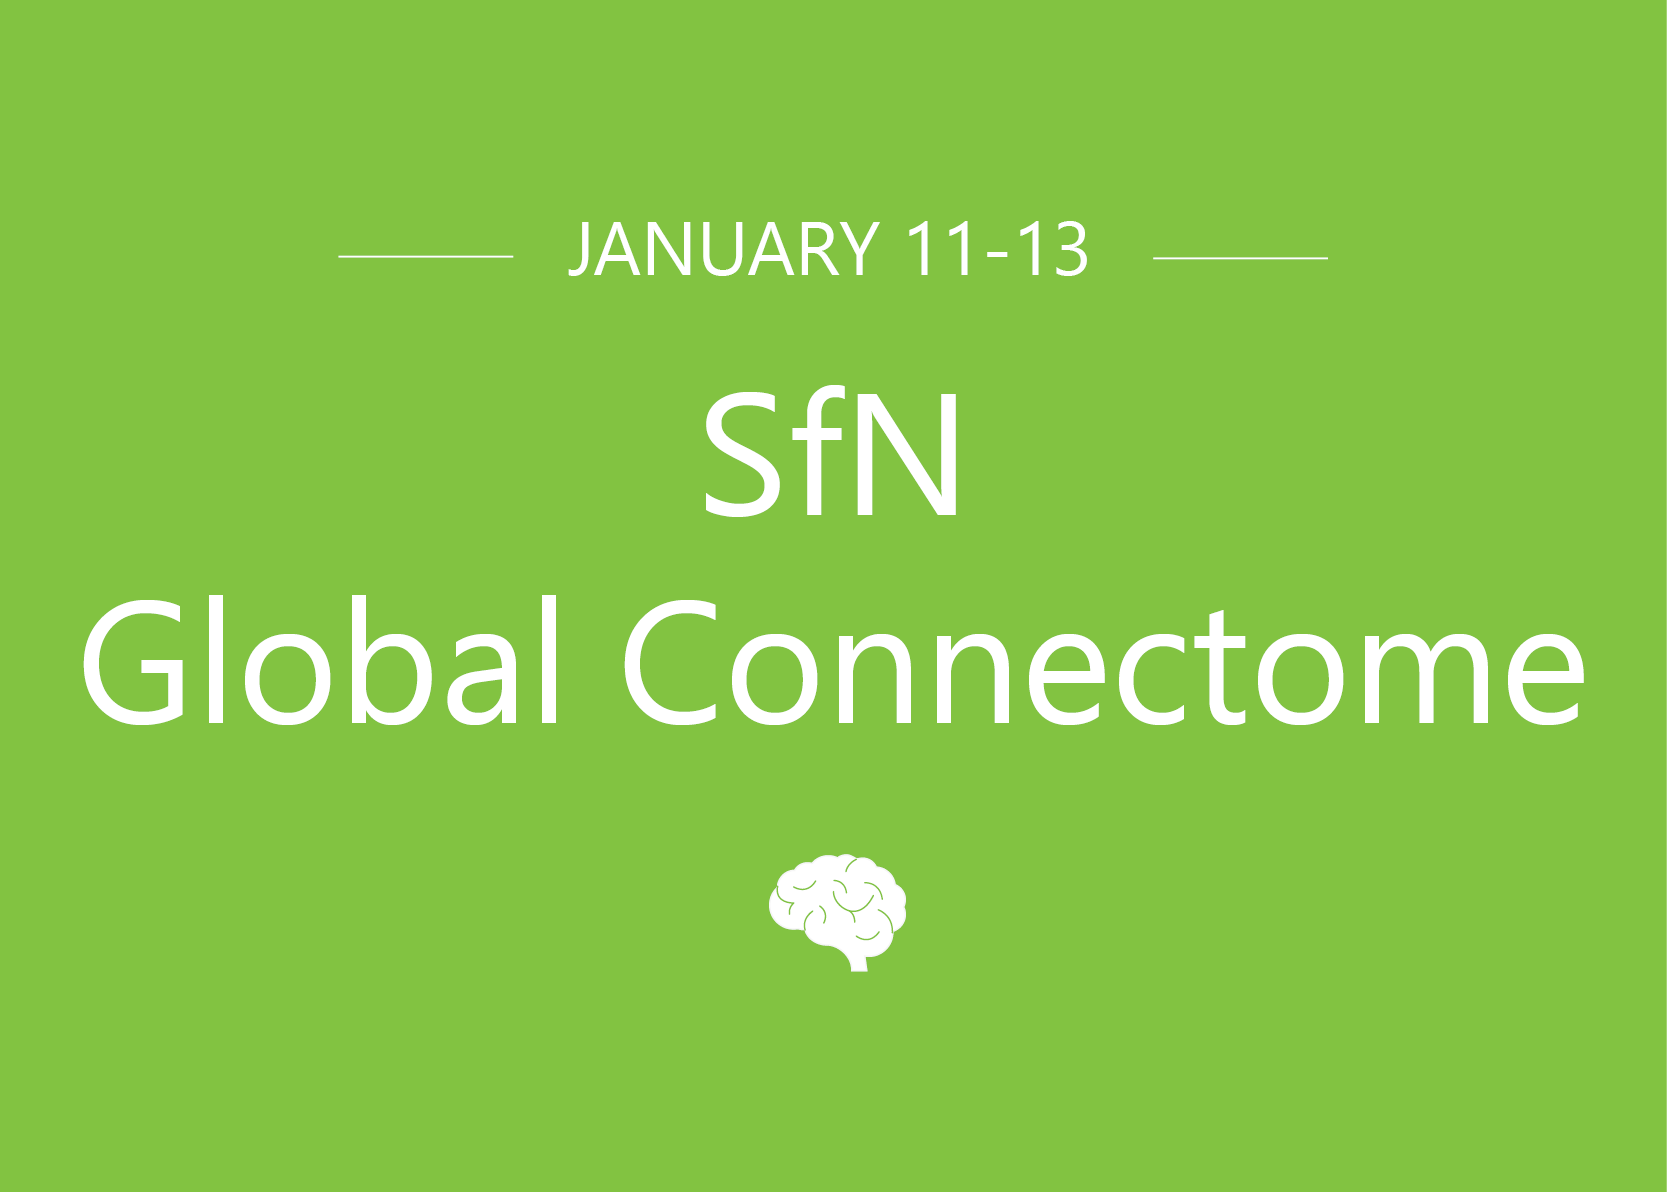 Sfn connectome 2021